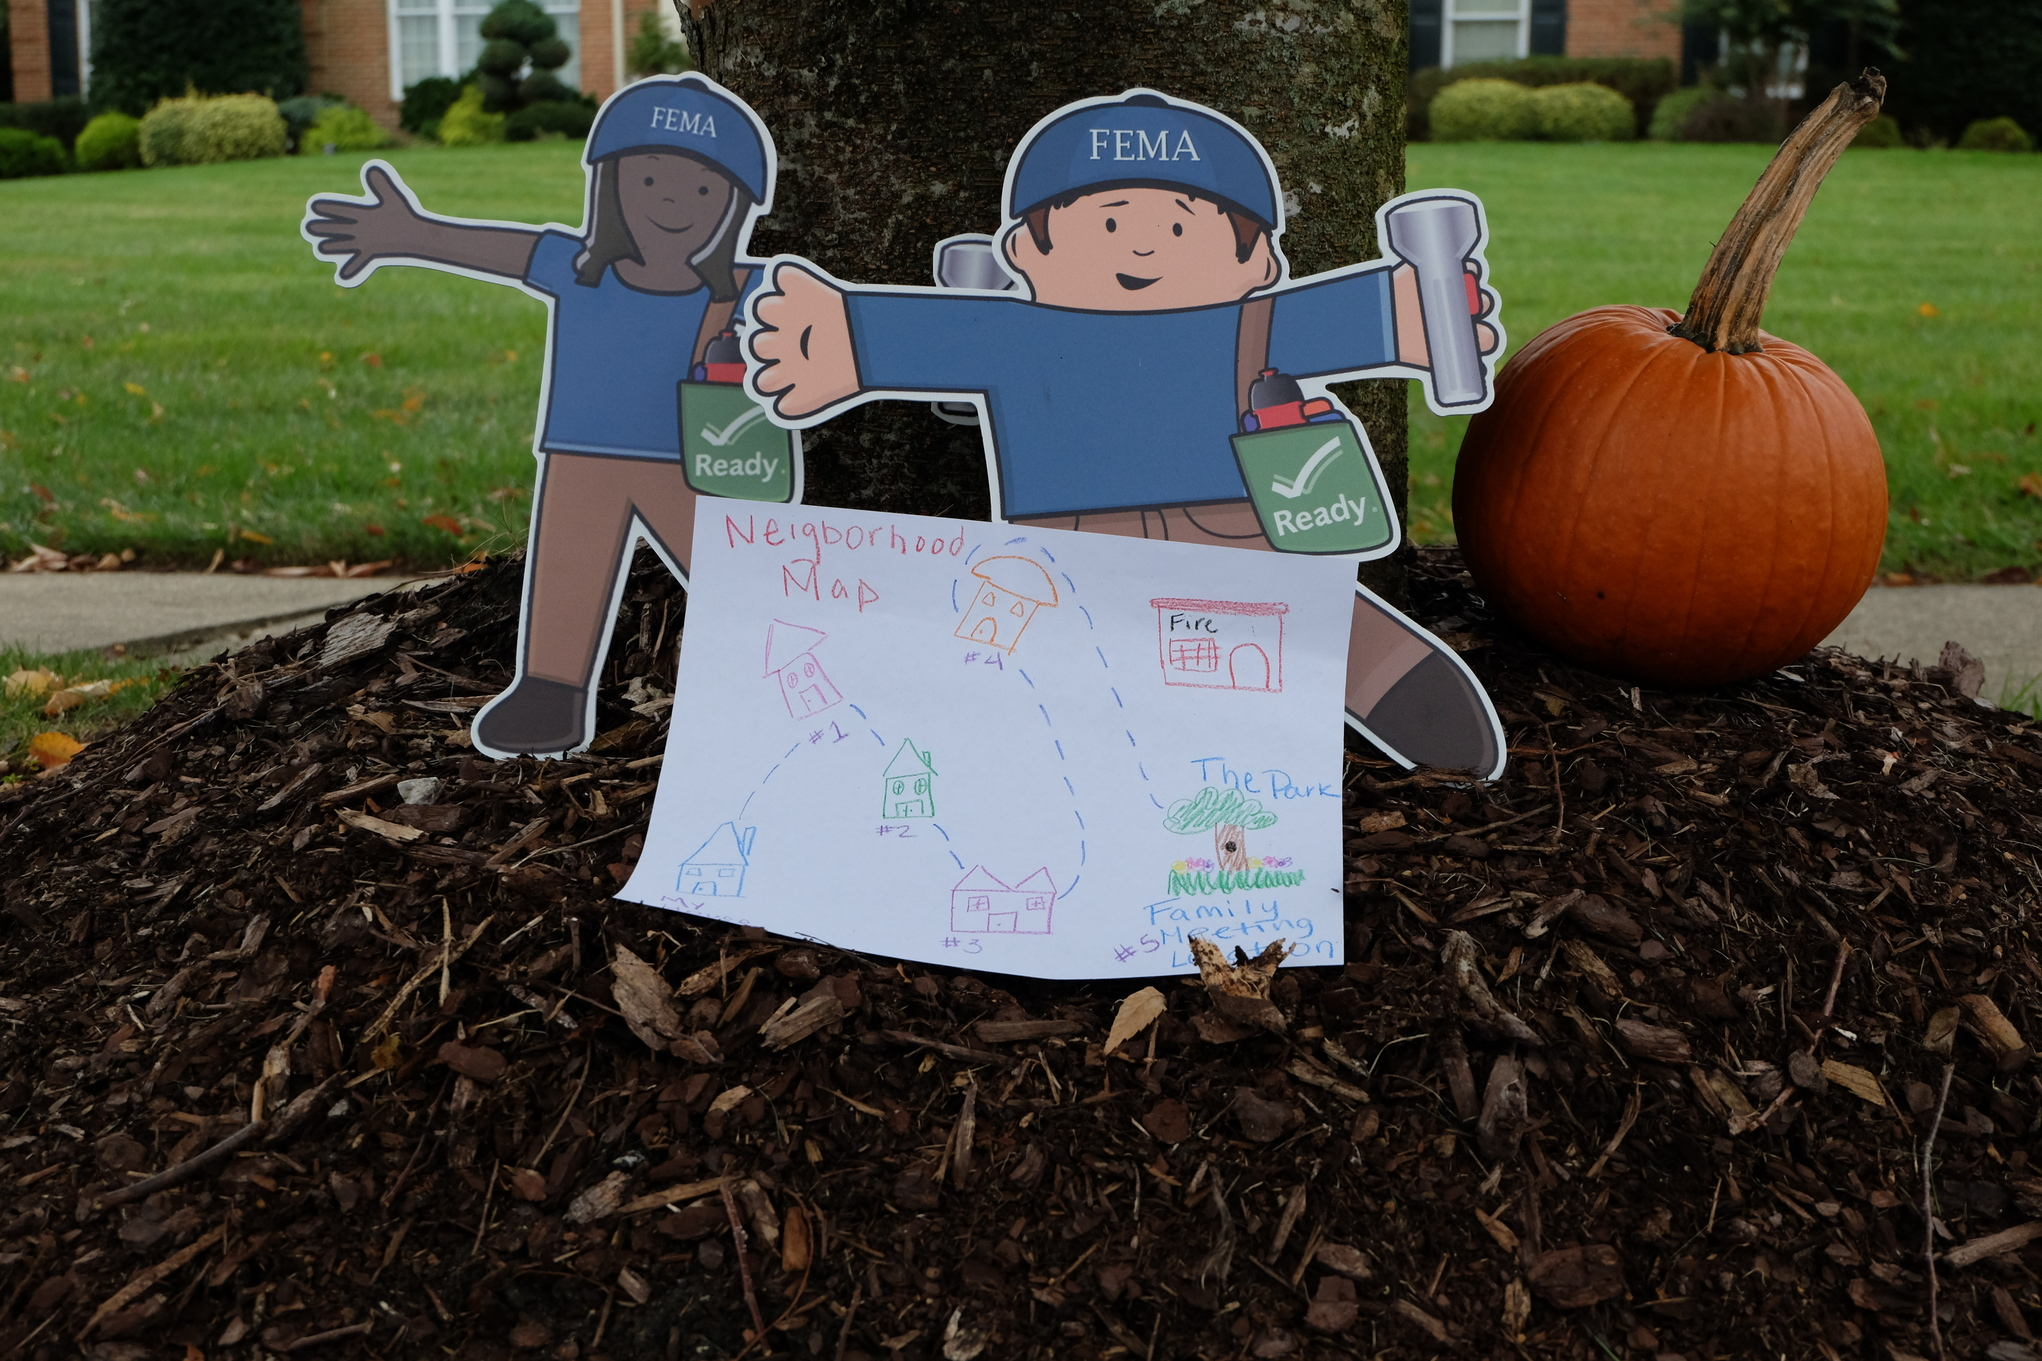 Washington, D.C., October 30, 2013 -- Flat Stanley and Flat Stella prepare to go trick-or-treating in their neighborhood by highlighting their path using a map of their neighborhood from their family emergency communication plan.